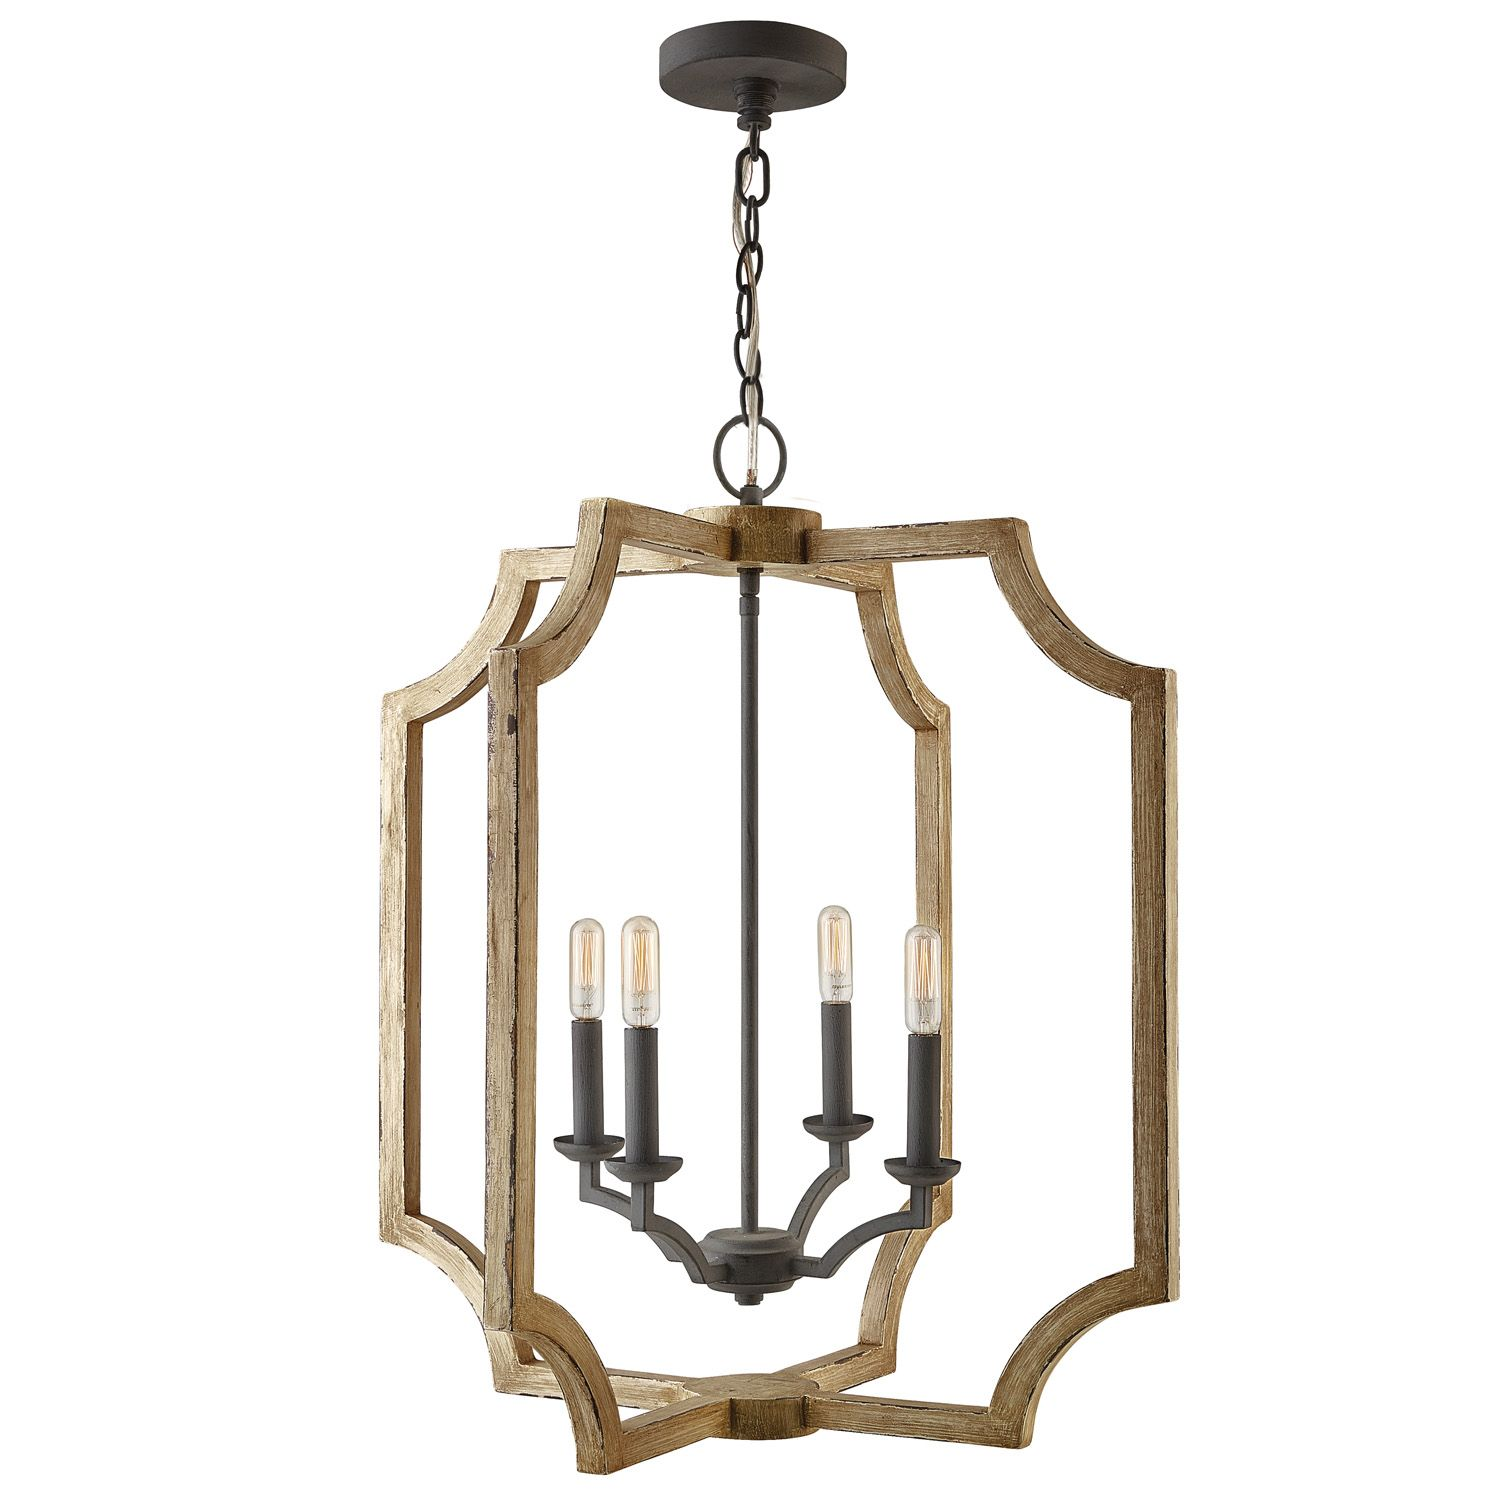 This rustic light fixture by capital lighting is available from cardello lighting in pittsburgh housetrends